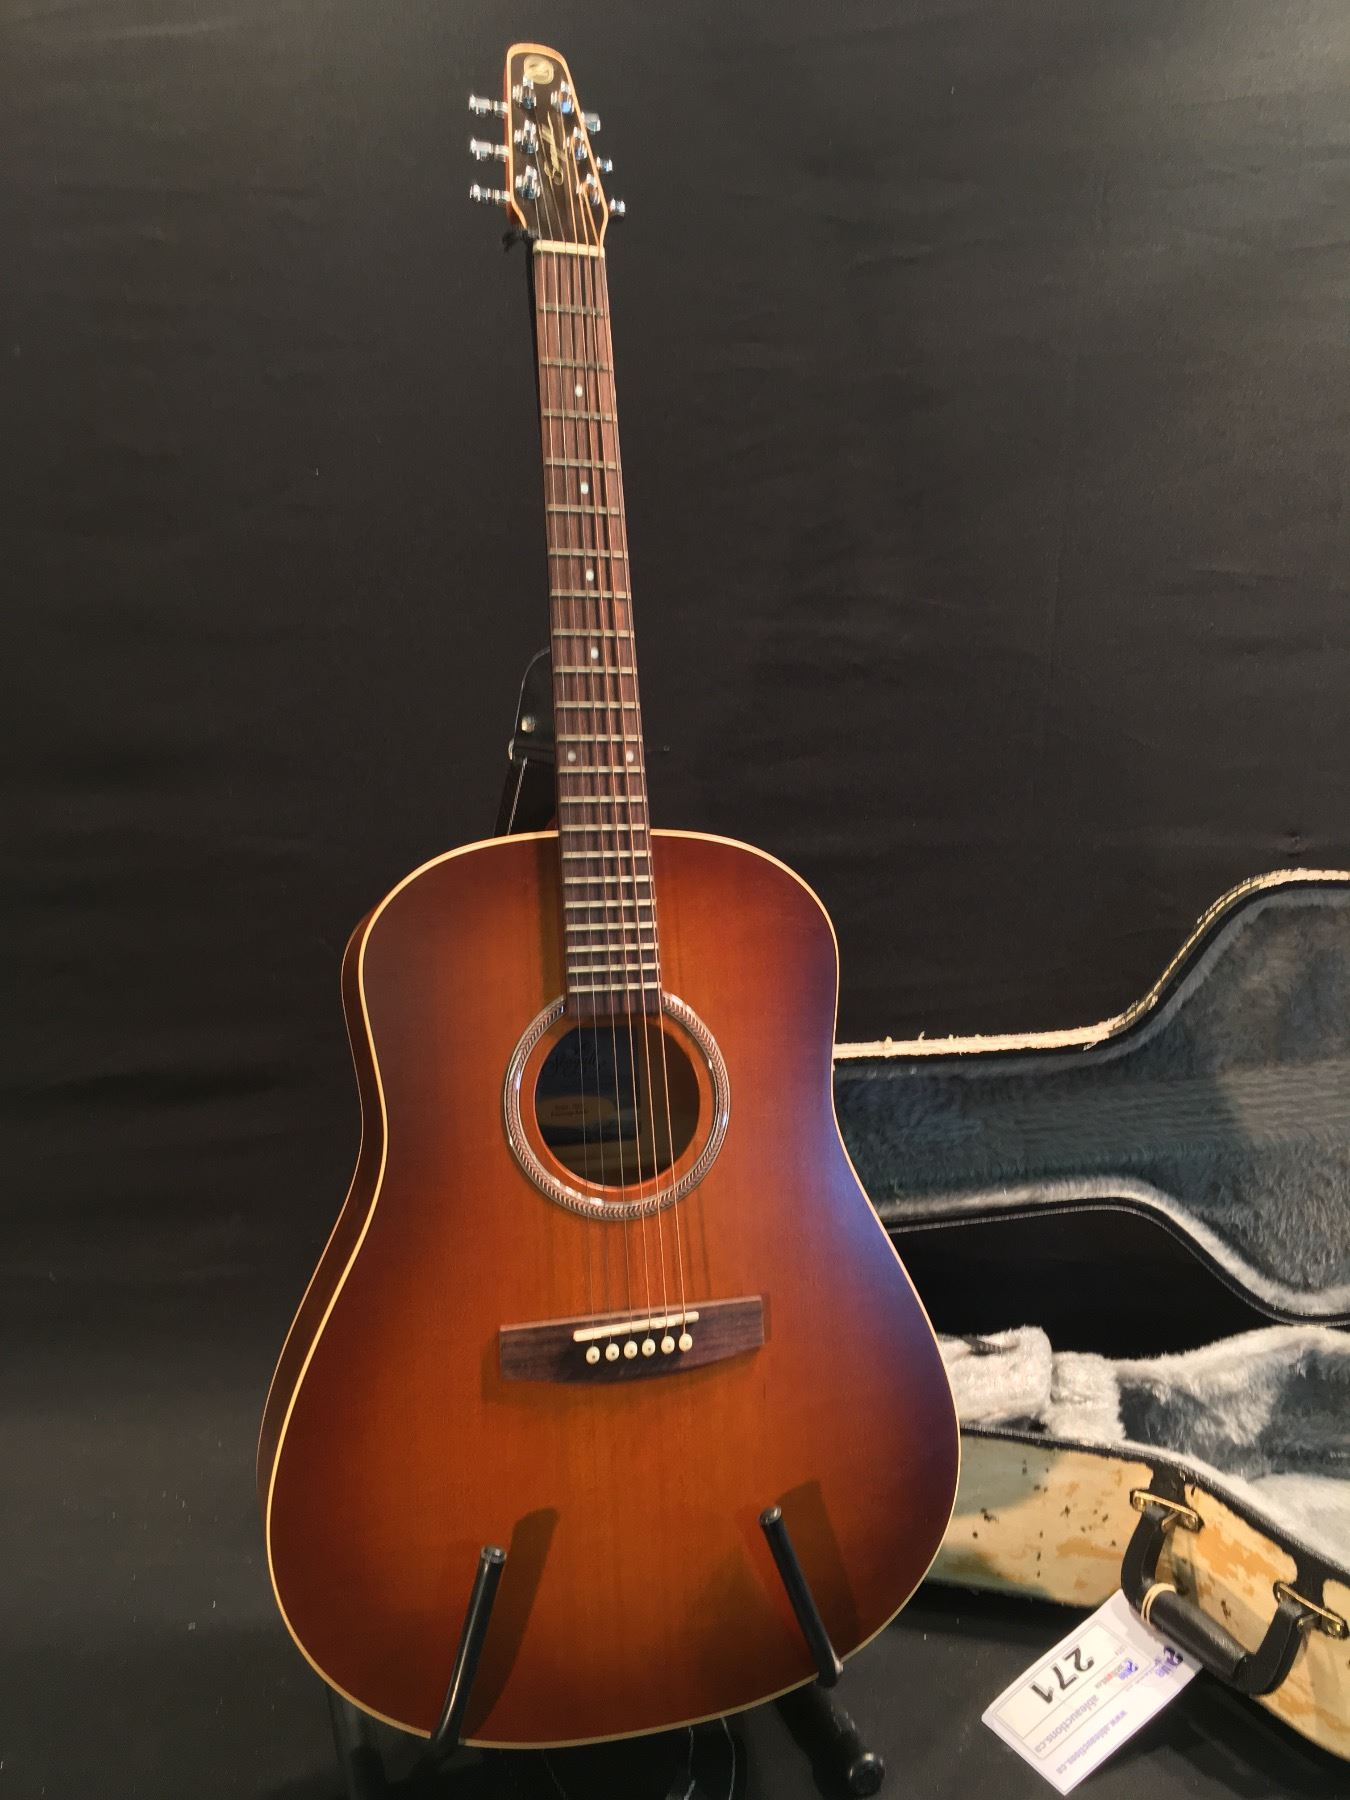 27cebcd160 Image 1 : SEAGULL MODEL 29822 ENTOURAGE RUSTIC ACOUSTIC GUITAR, MADE IN  QUEBEC, CANADA ...